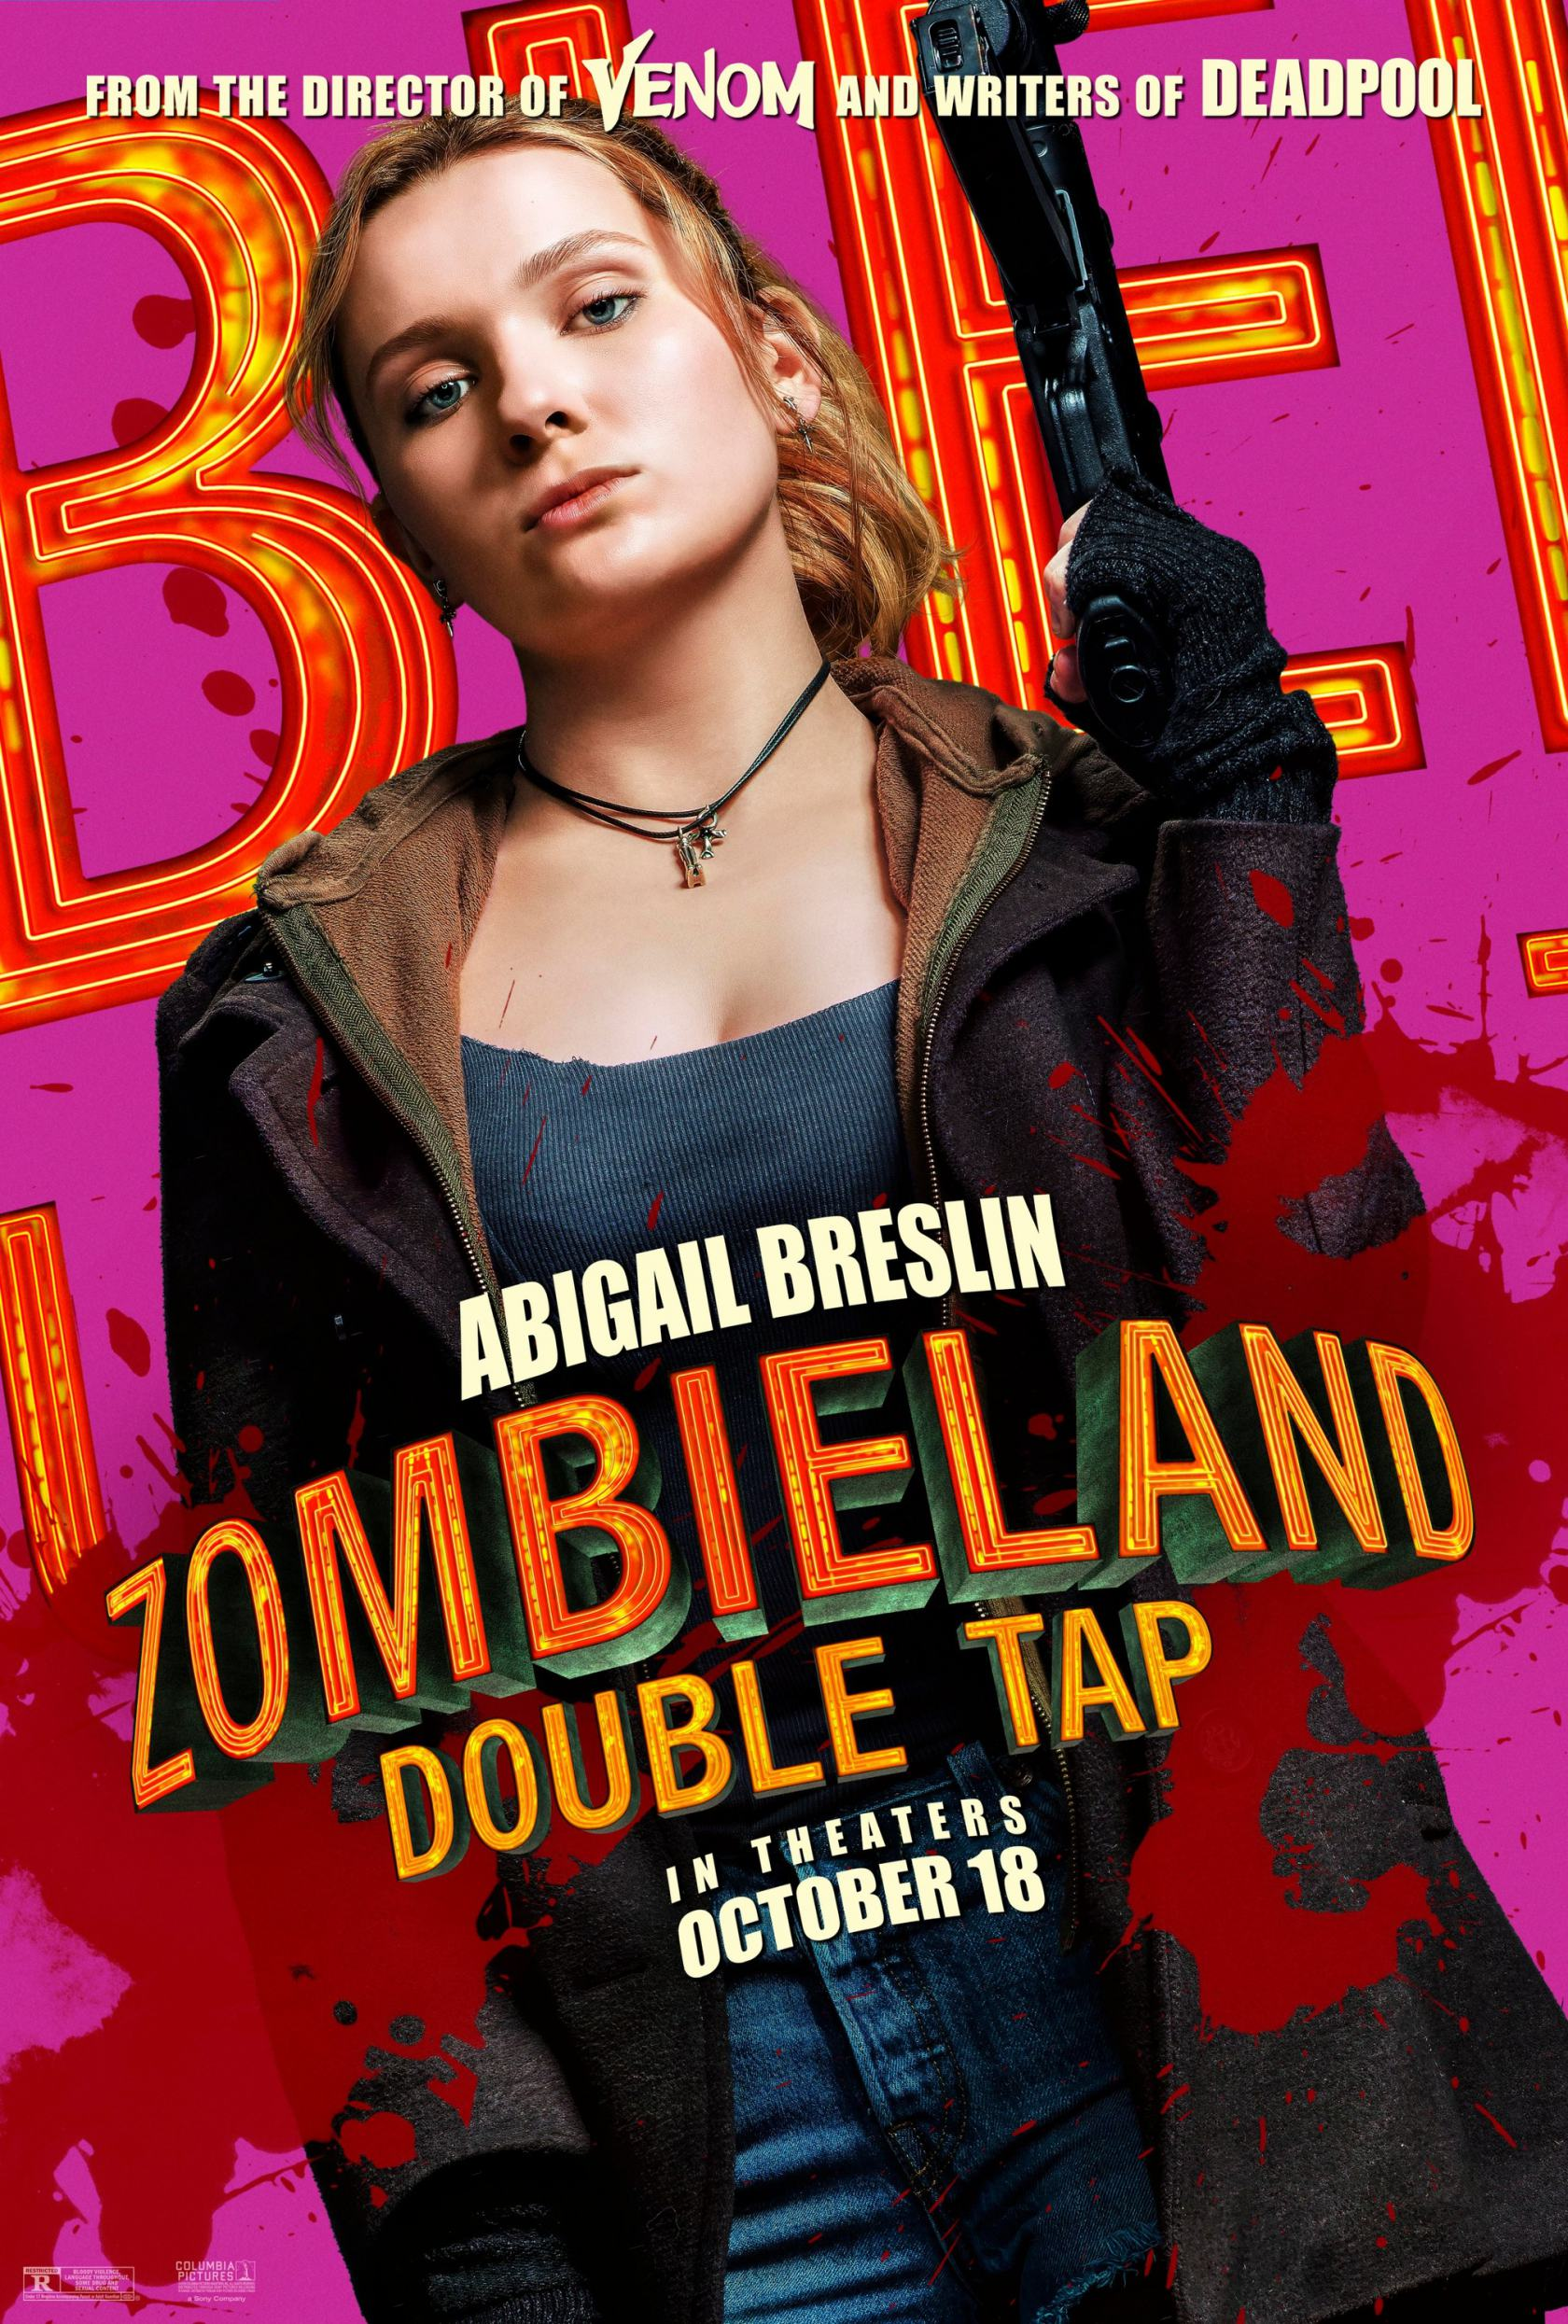 Zombieland Double Tap 2019 Poster 2 Trailer Addict